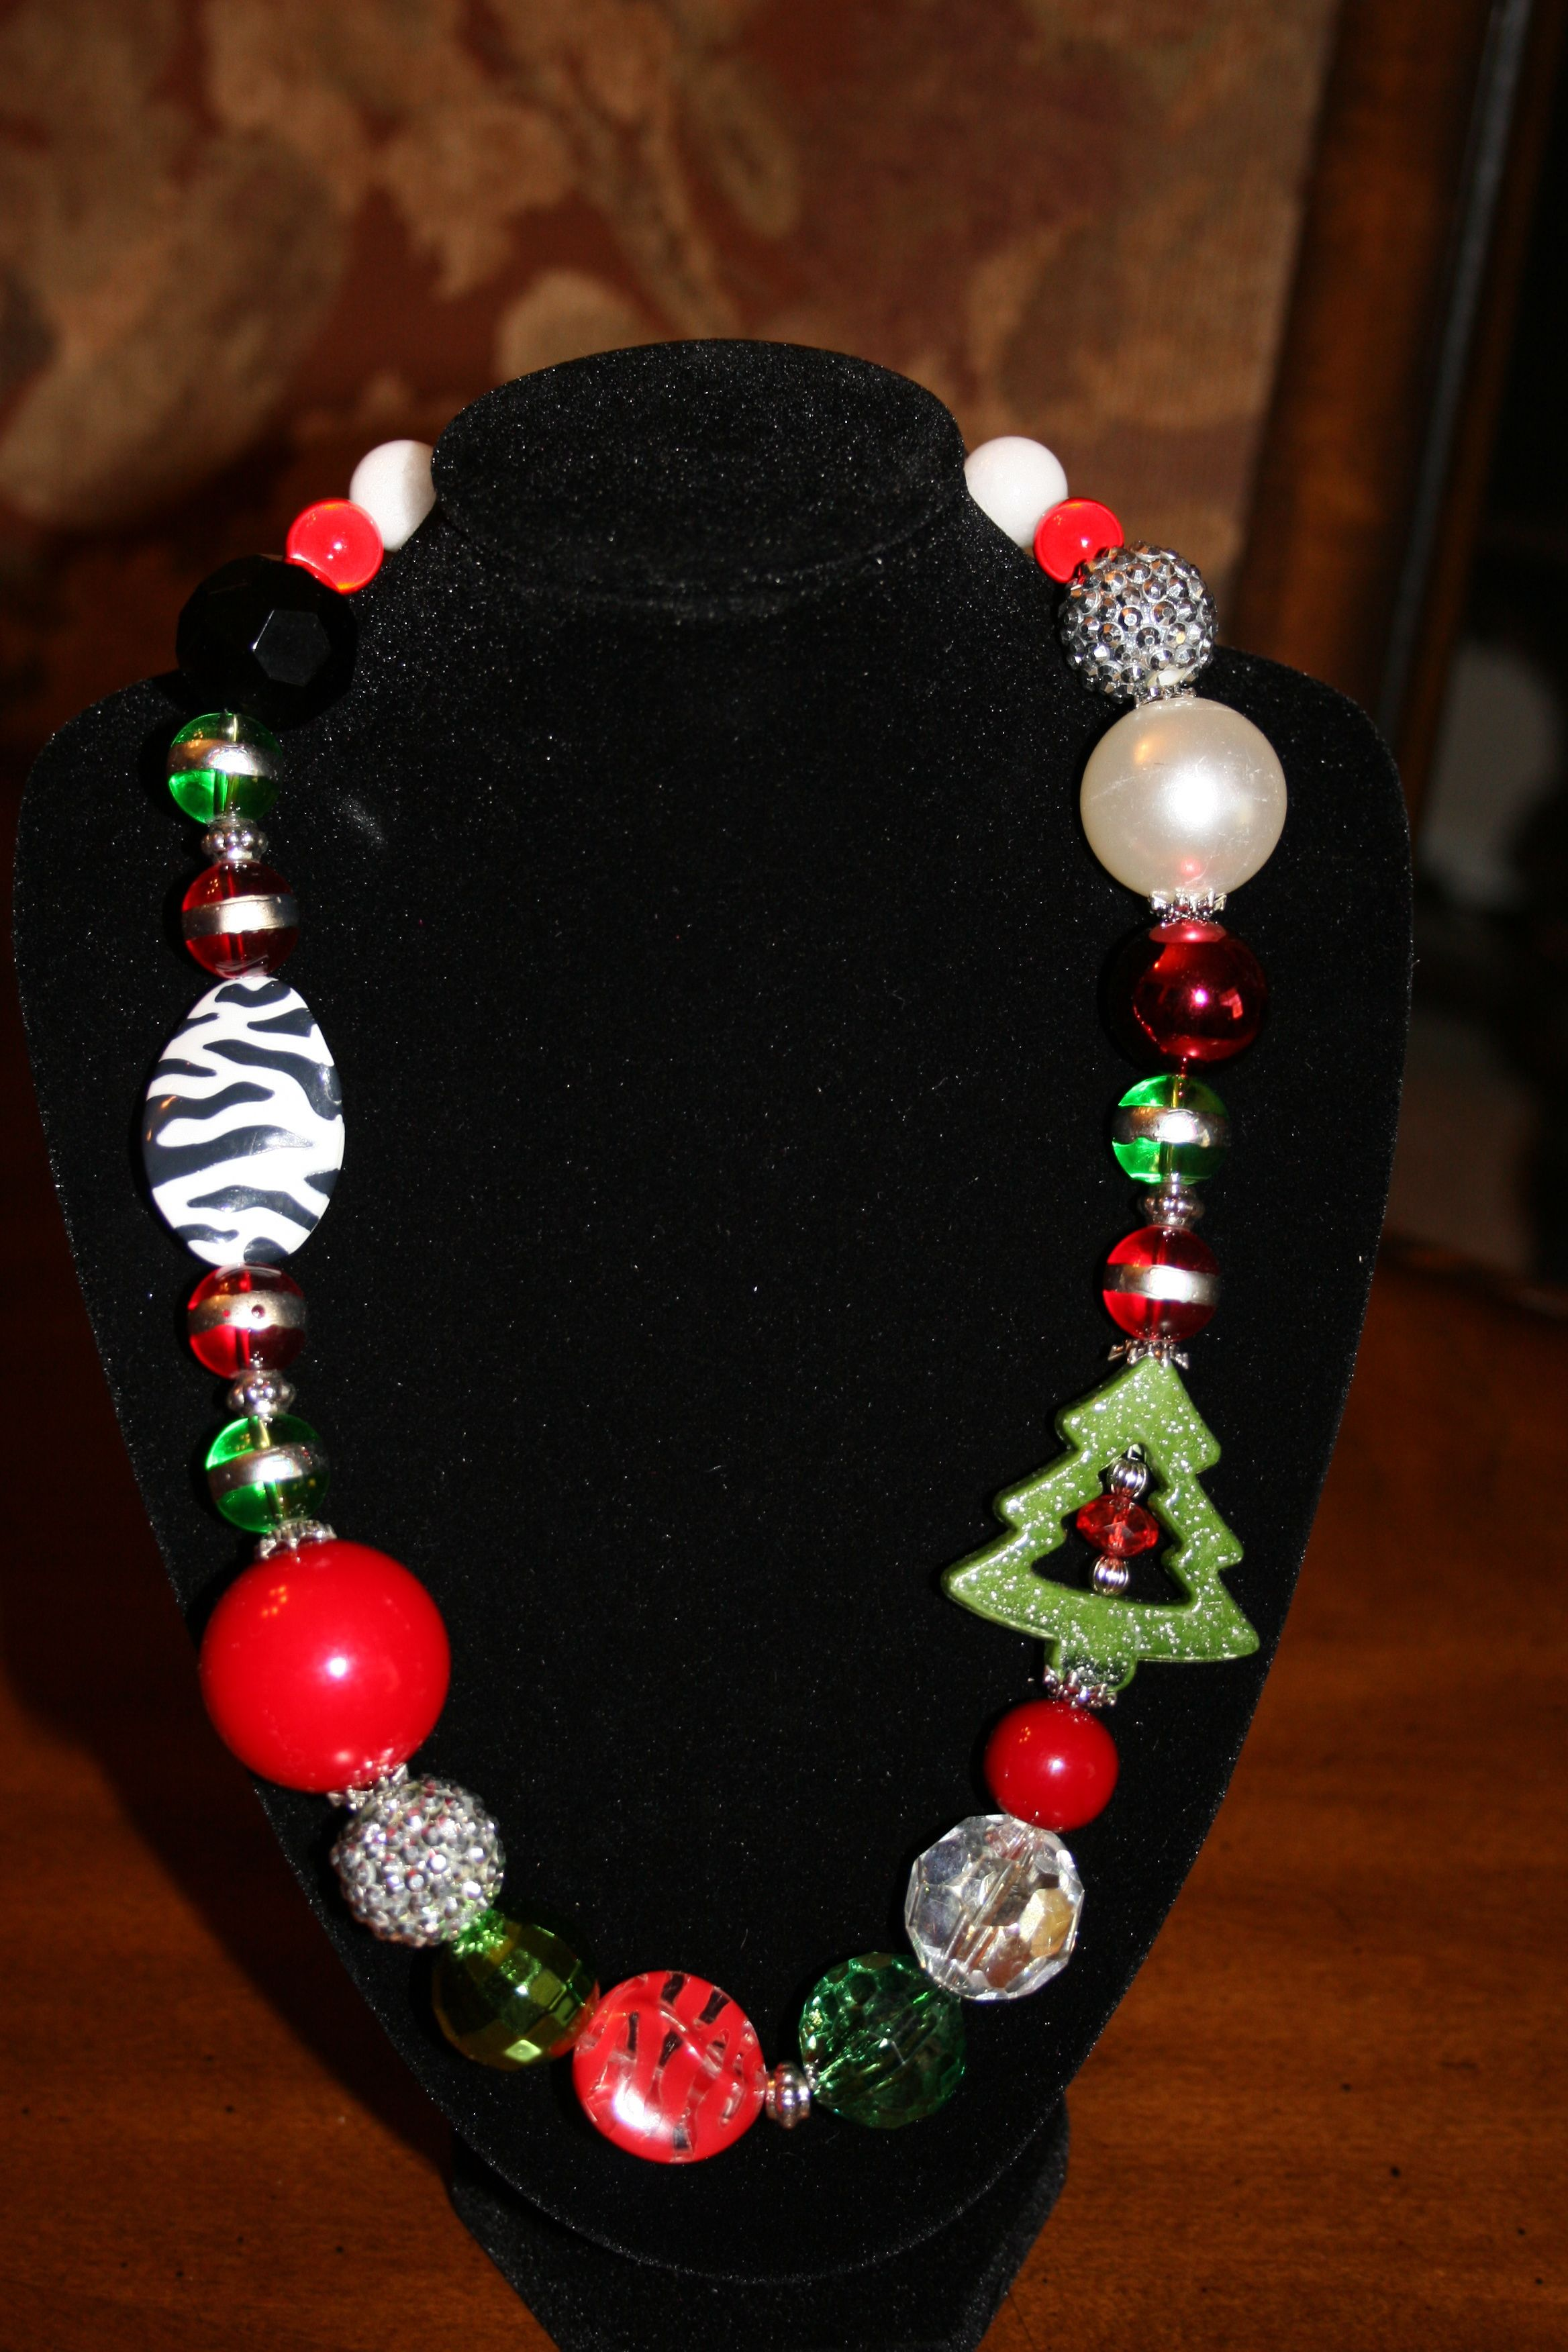 Fun Chunky Christmas Necklace Christmas Jewelry Christmas Necklace Themed Jewelry